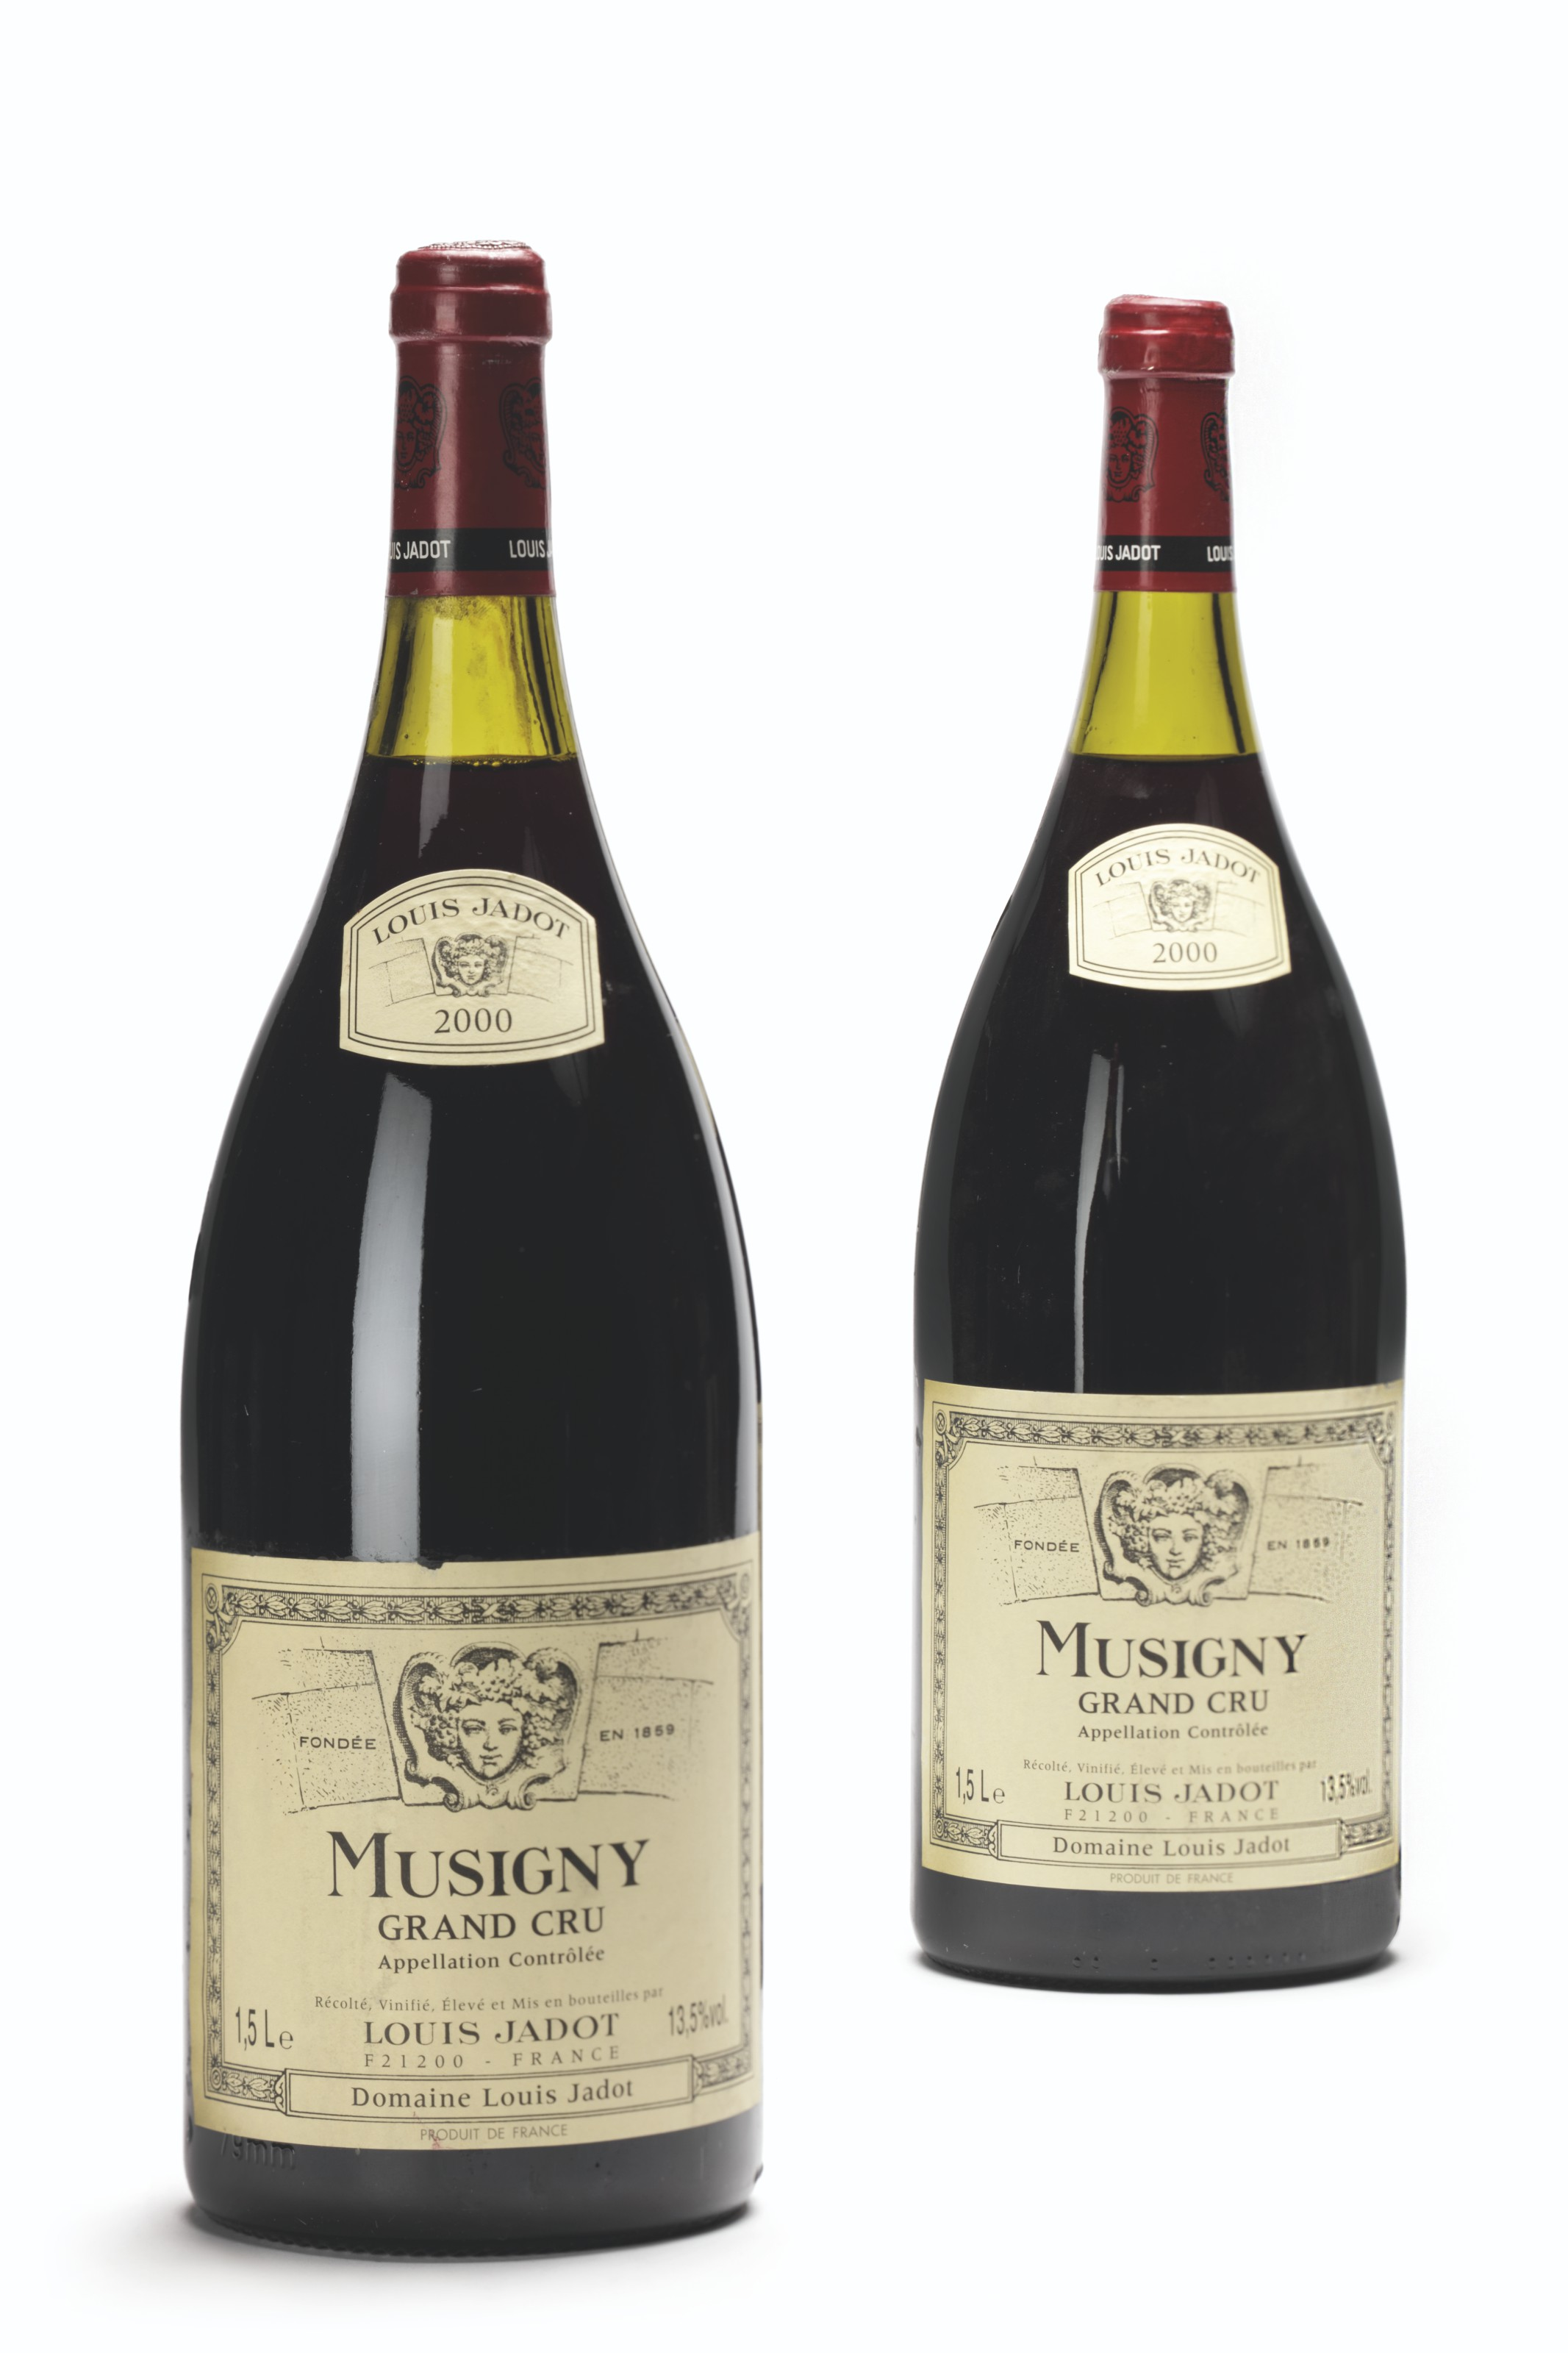 Louis Jadot, Musigny 2000. Lot 903, 2 magnums per lot. Estimate £900-1,100. Offered in Finest and Rarest Wines and Spirits Featuring Two Superb Cellars, and Highlights from the Collection of the Earl of Snowdon, 17-18 June 2021 at Christie's in London